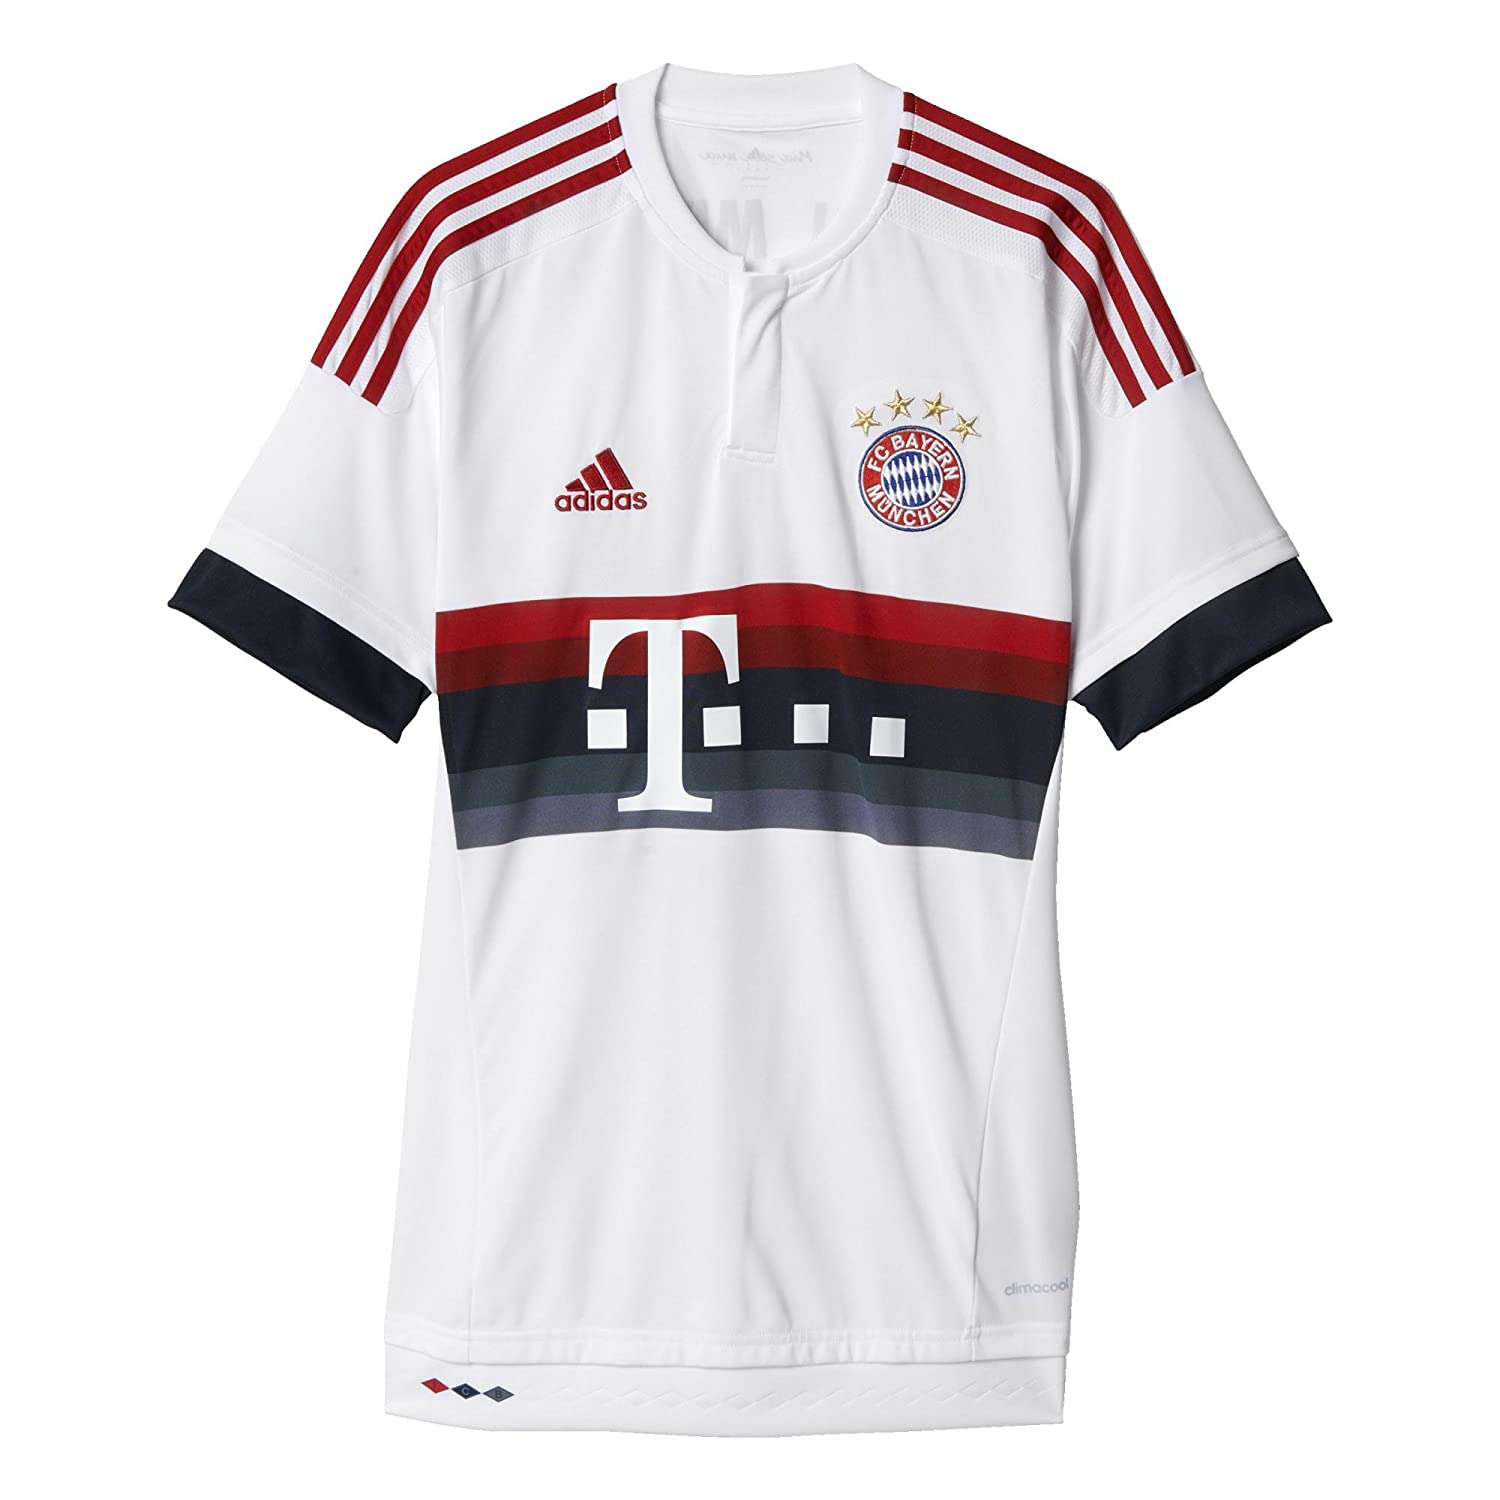 adidas Mens 2015 Bayern Munich Fc Away Jersey Large: Amazon.es ...